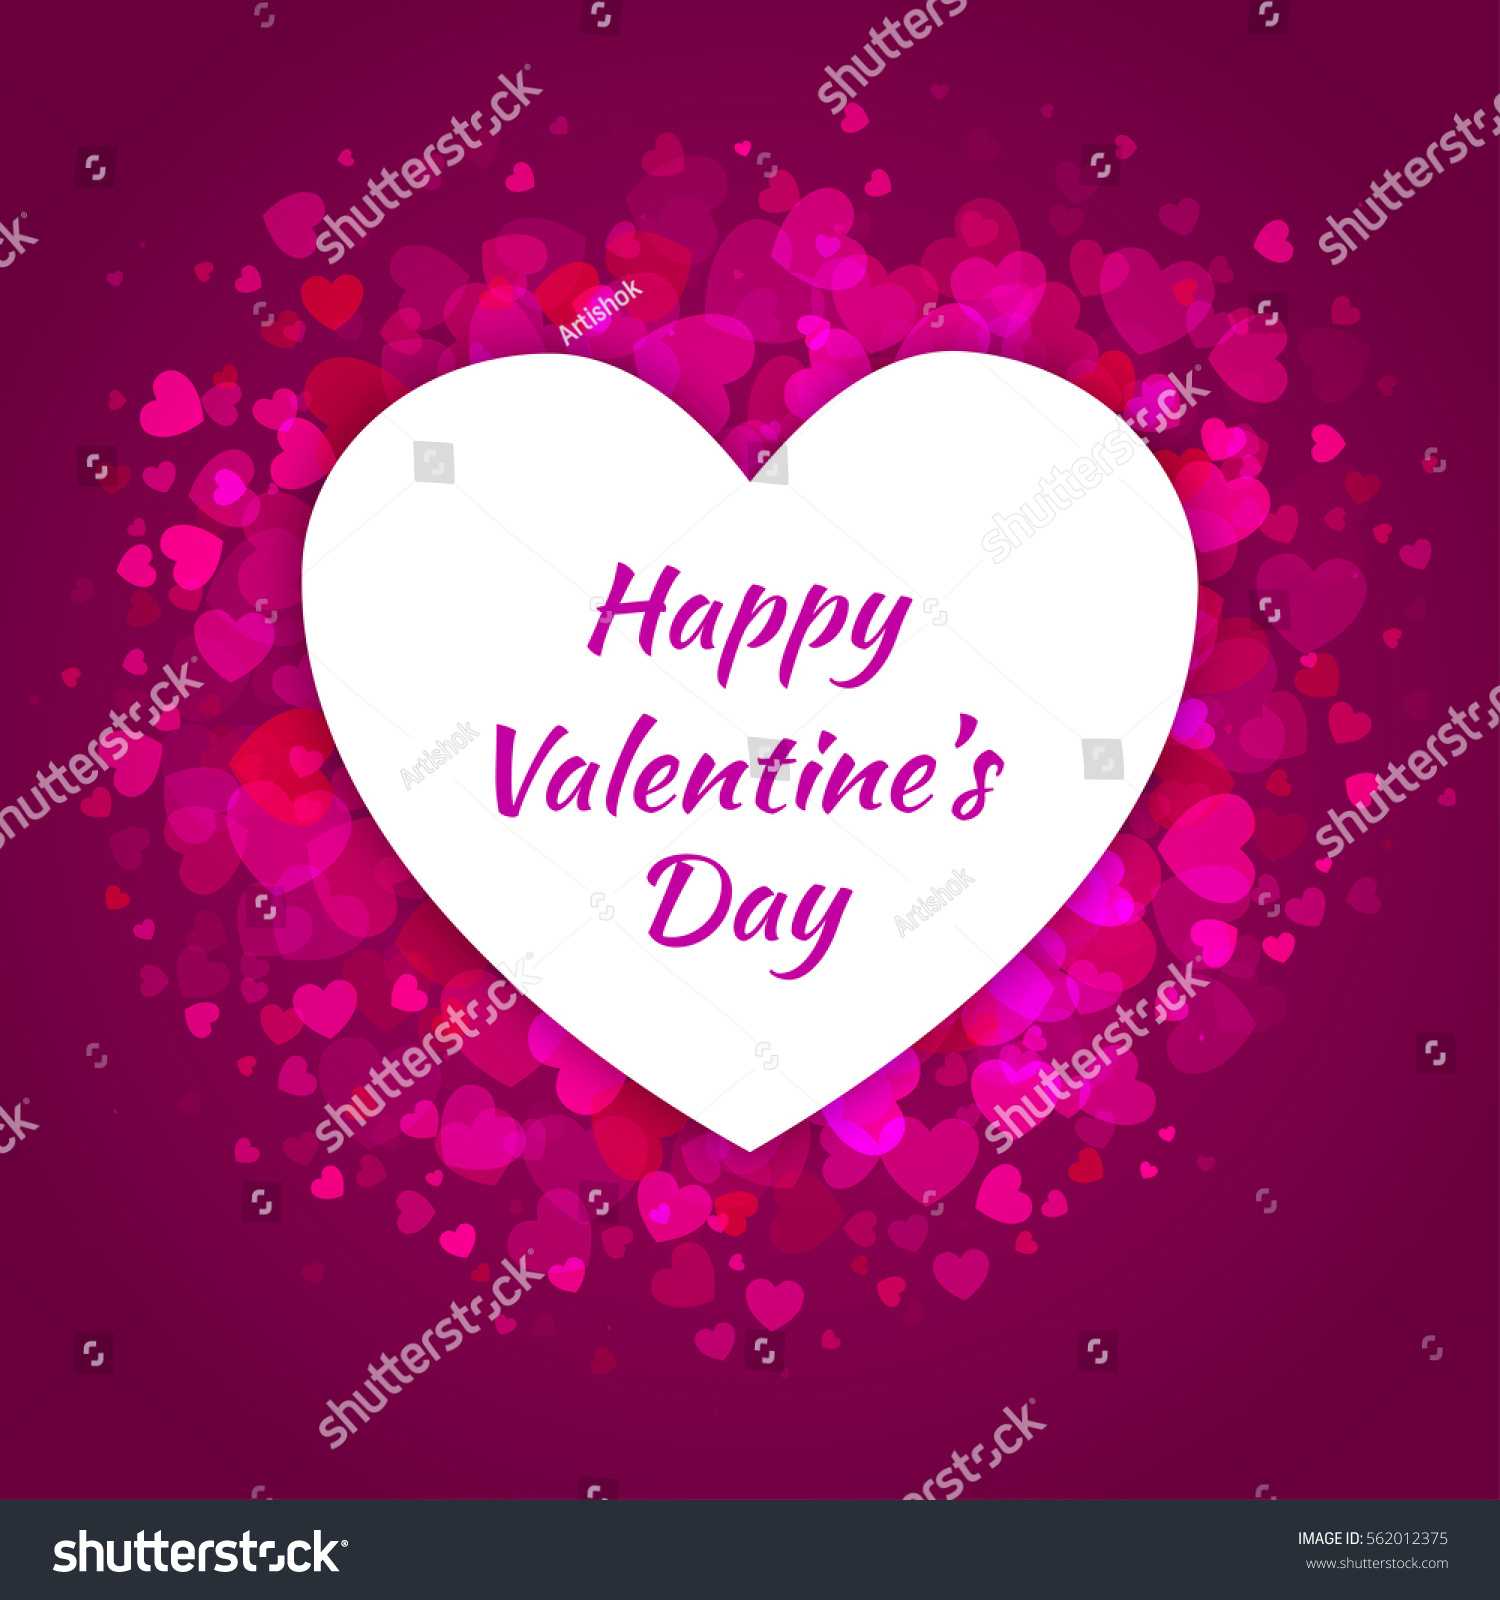 Abstract Bright Purple Violet Glow Light Hearts For Valentines Day  Background Design With White Heart Frame